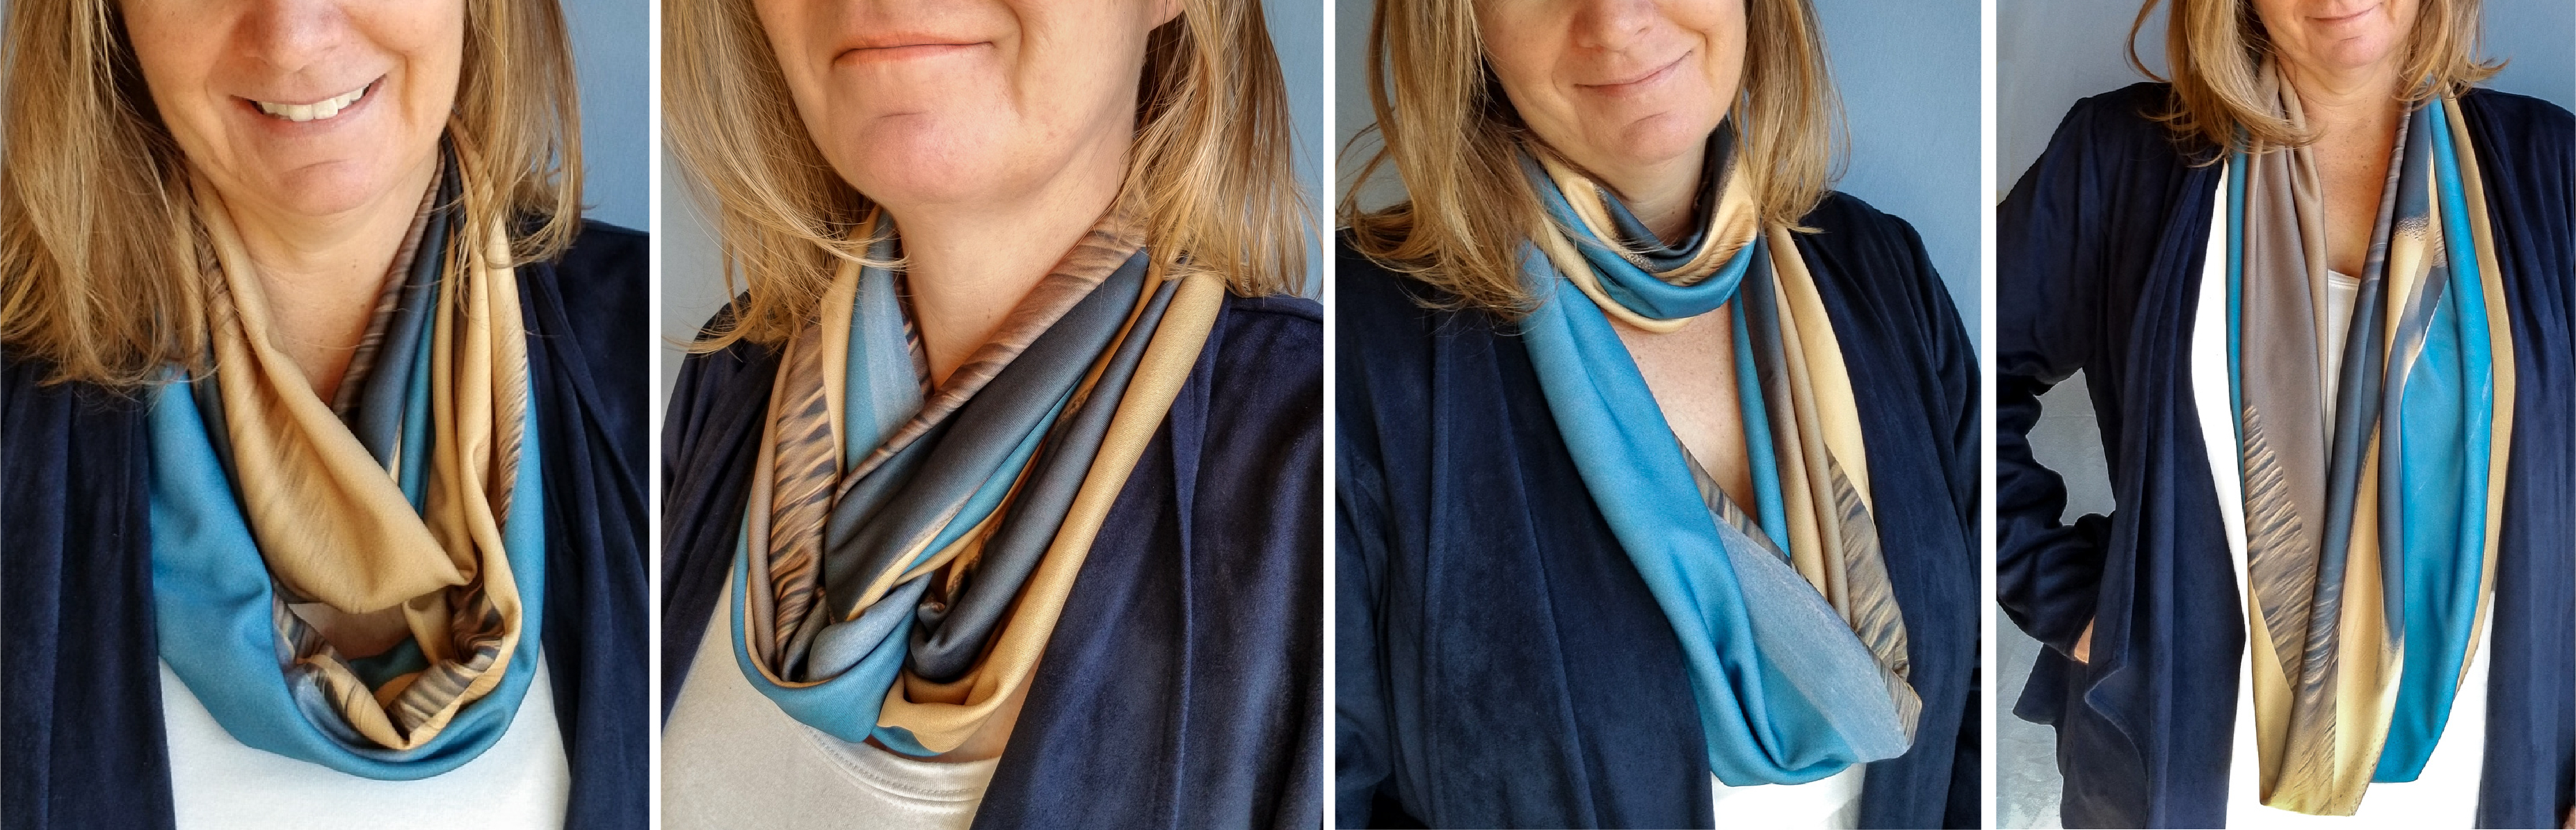 4 ways to wear blue and tan handmade infinity scarves